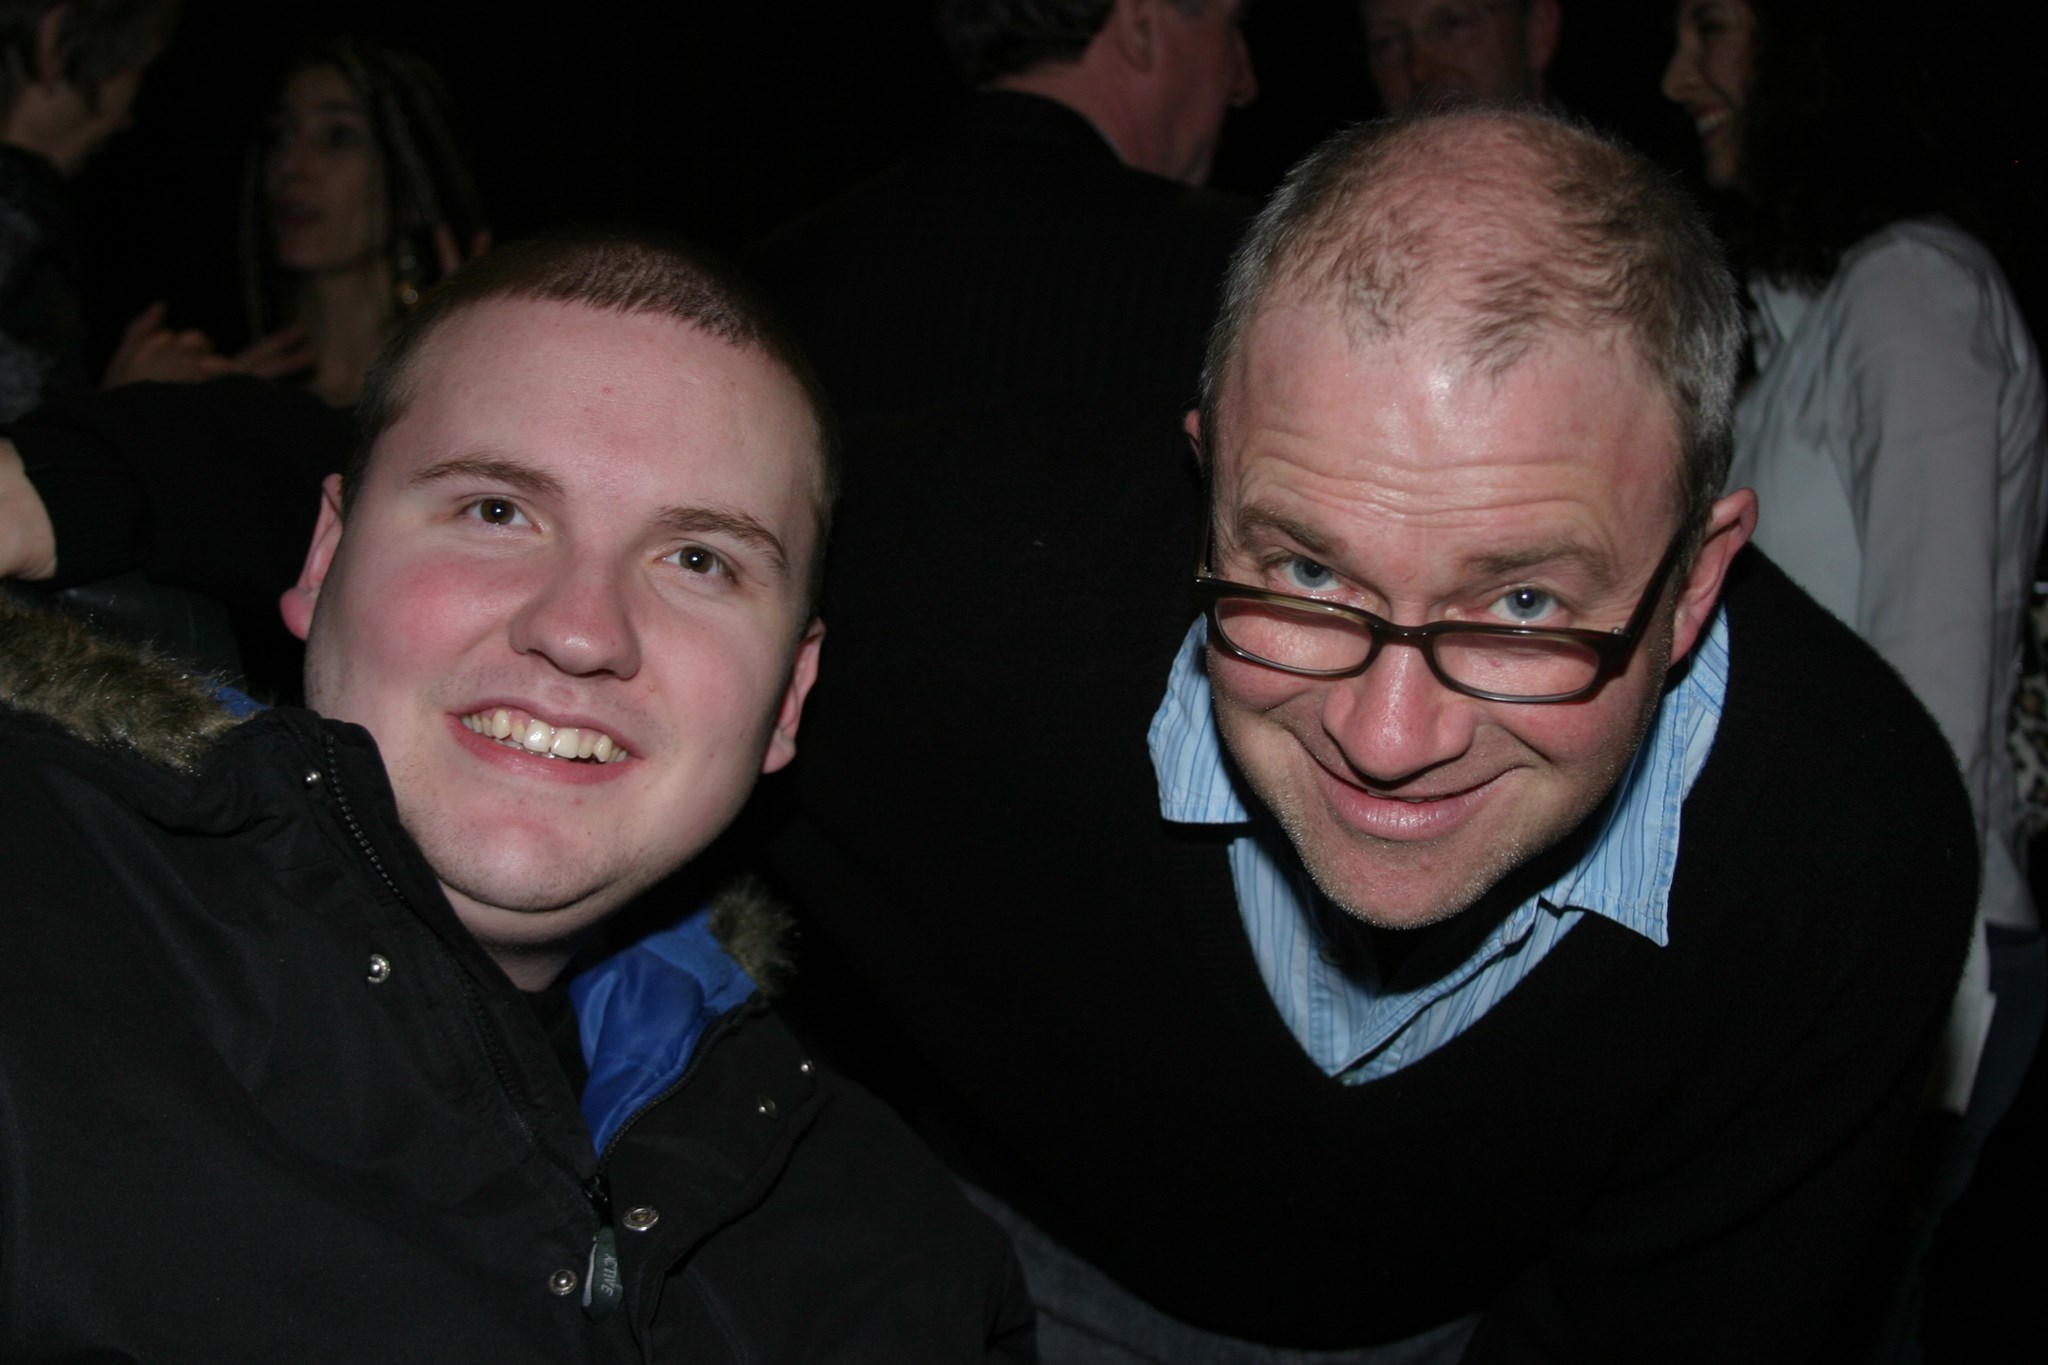 James with Harry Enfield.